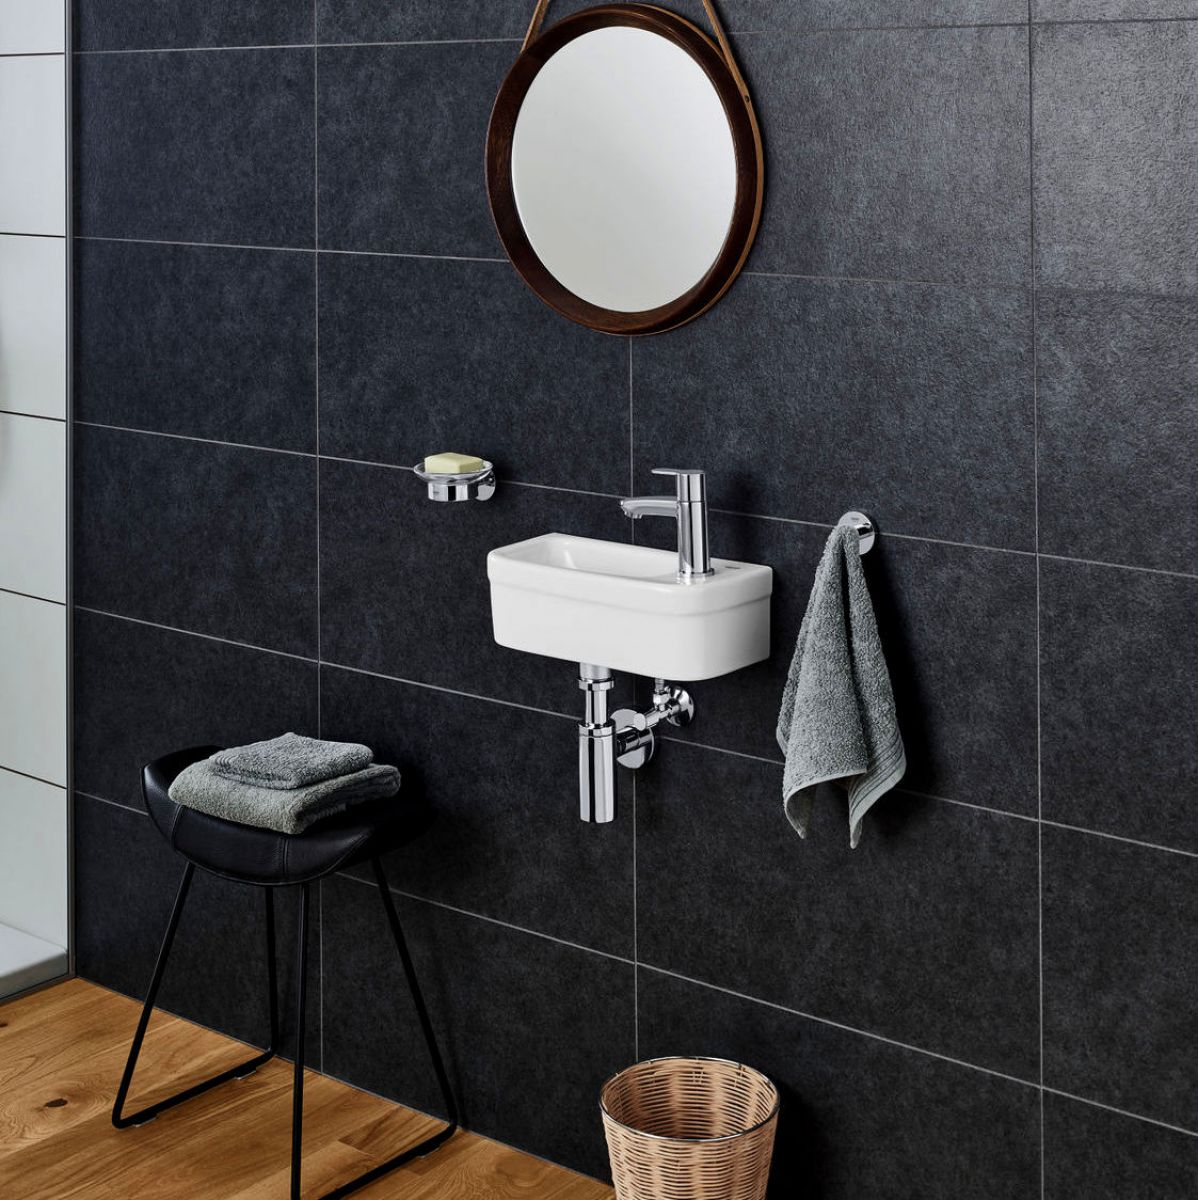 image example of a cloakroom basin